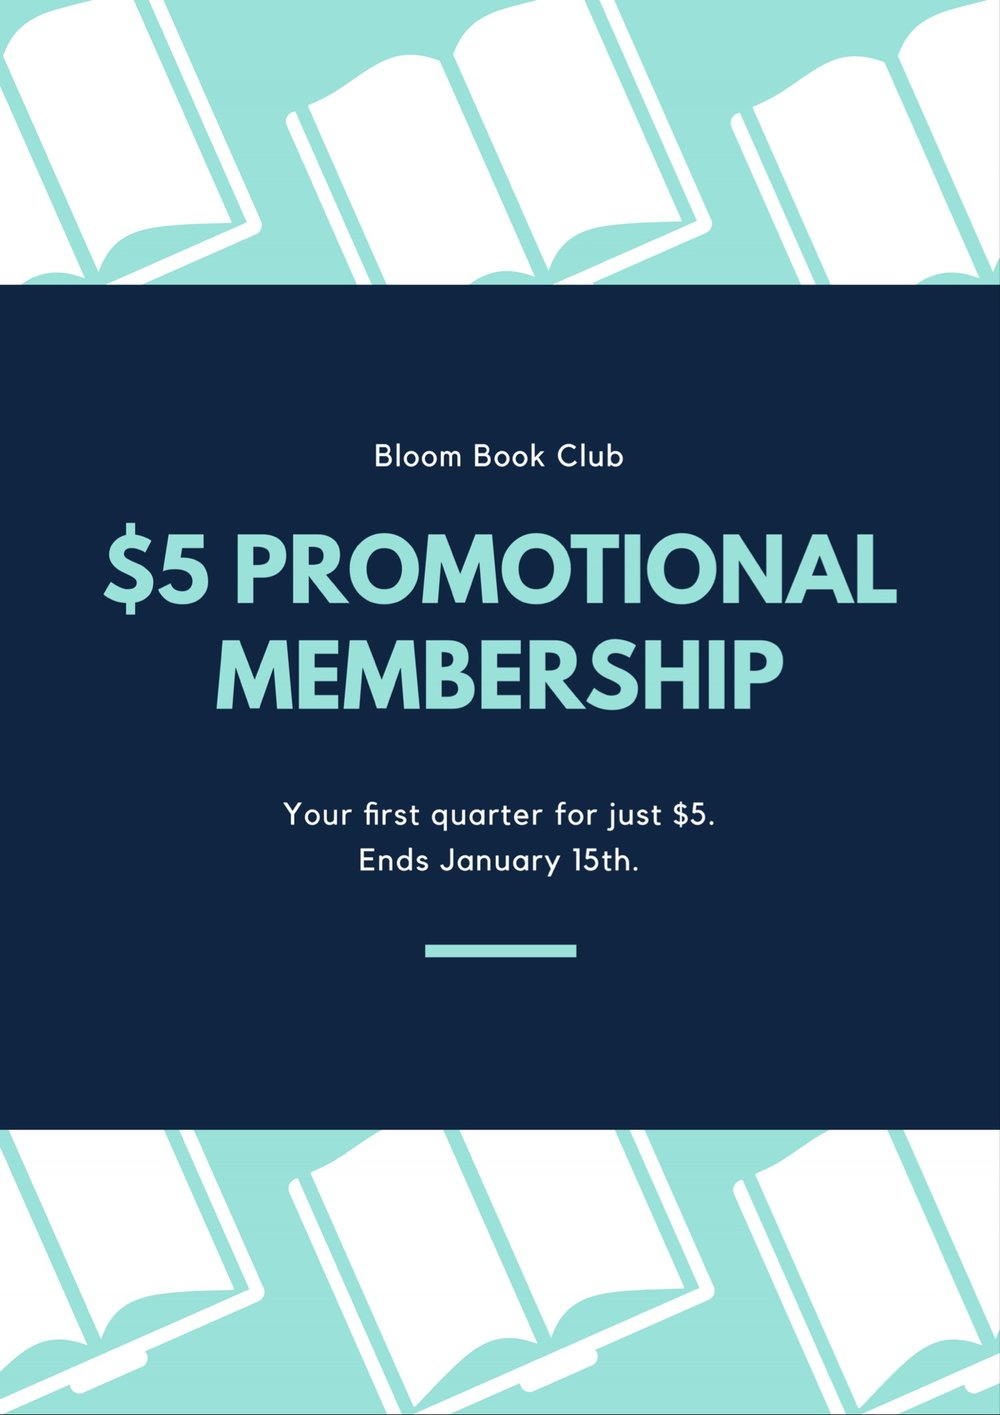 Bloom Book Club